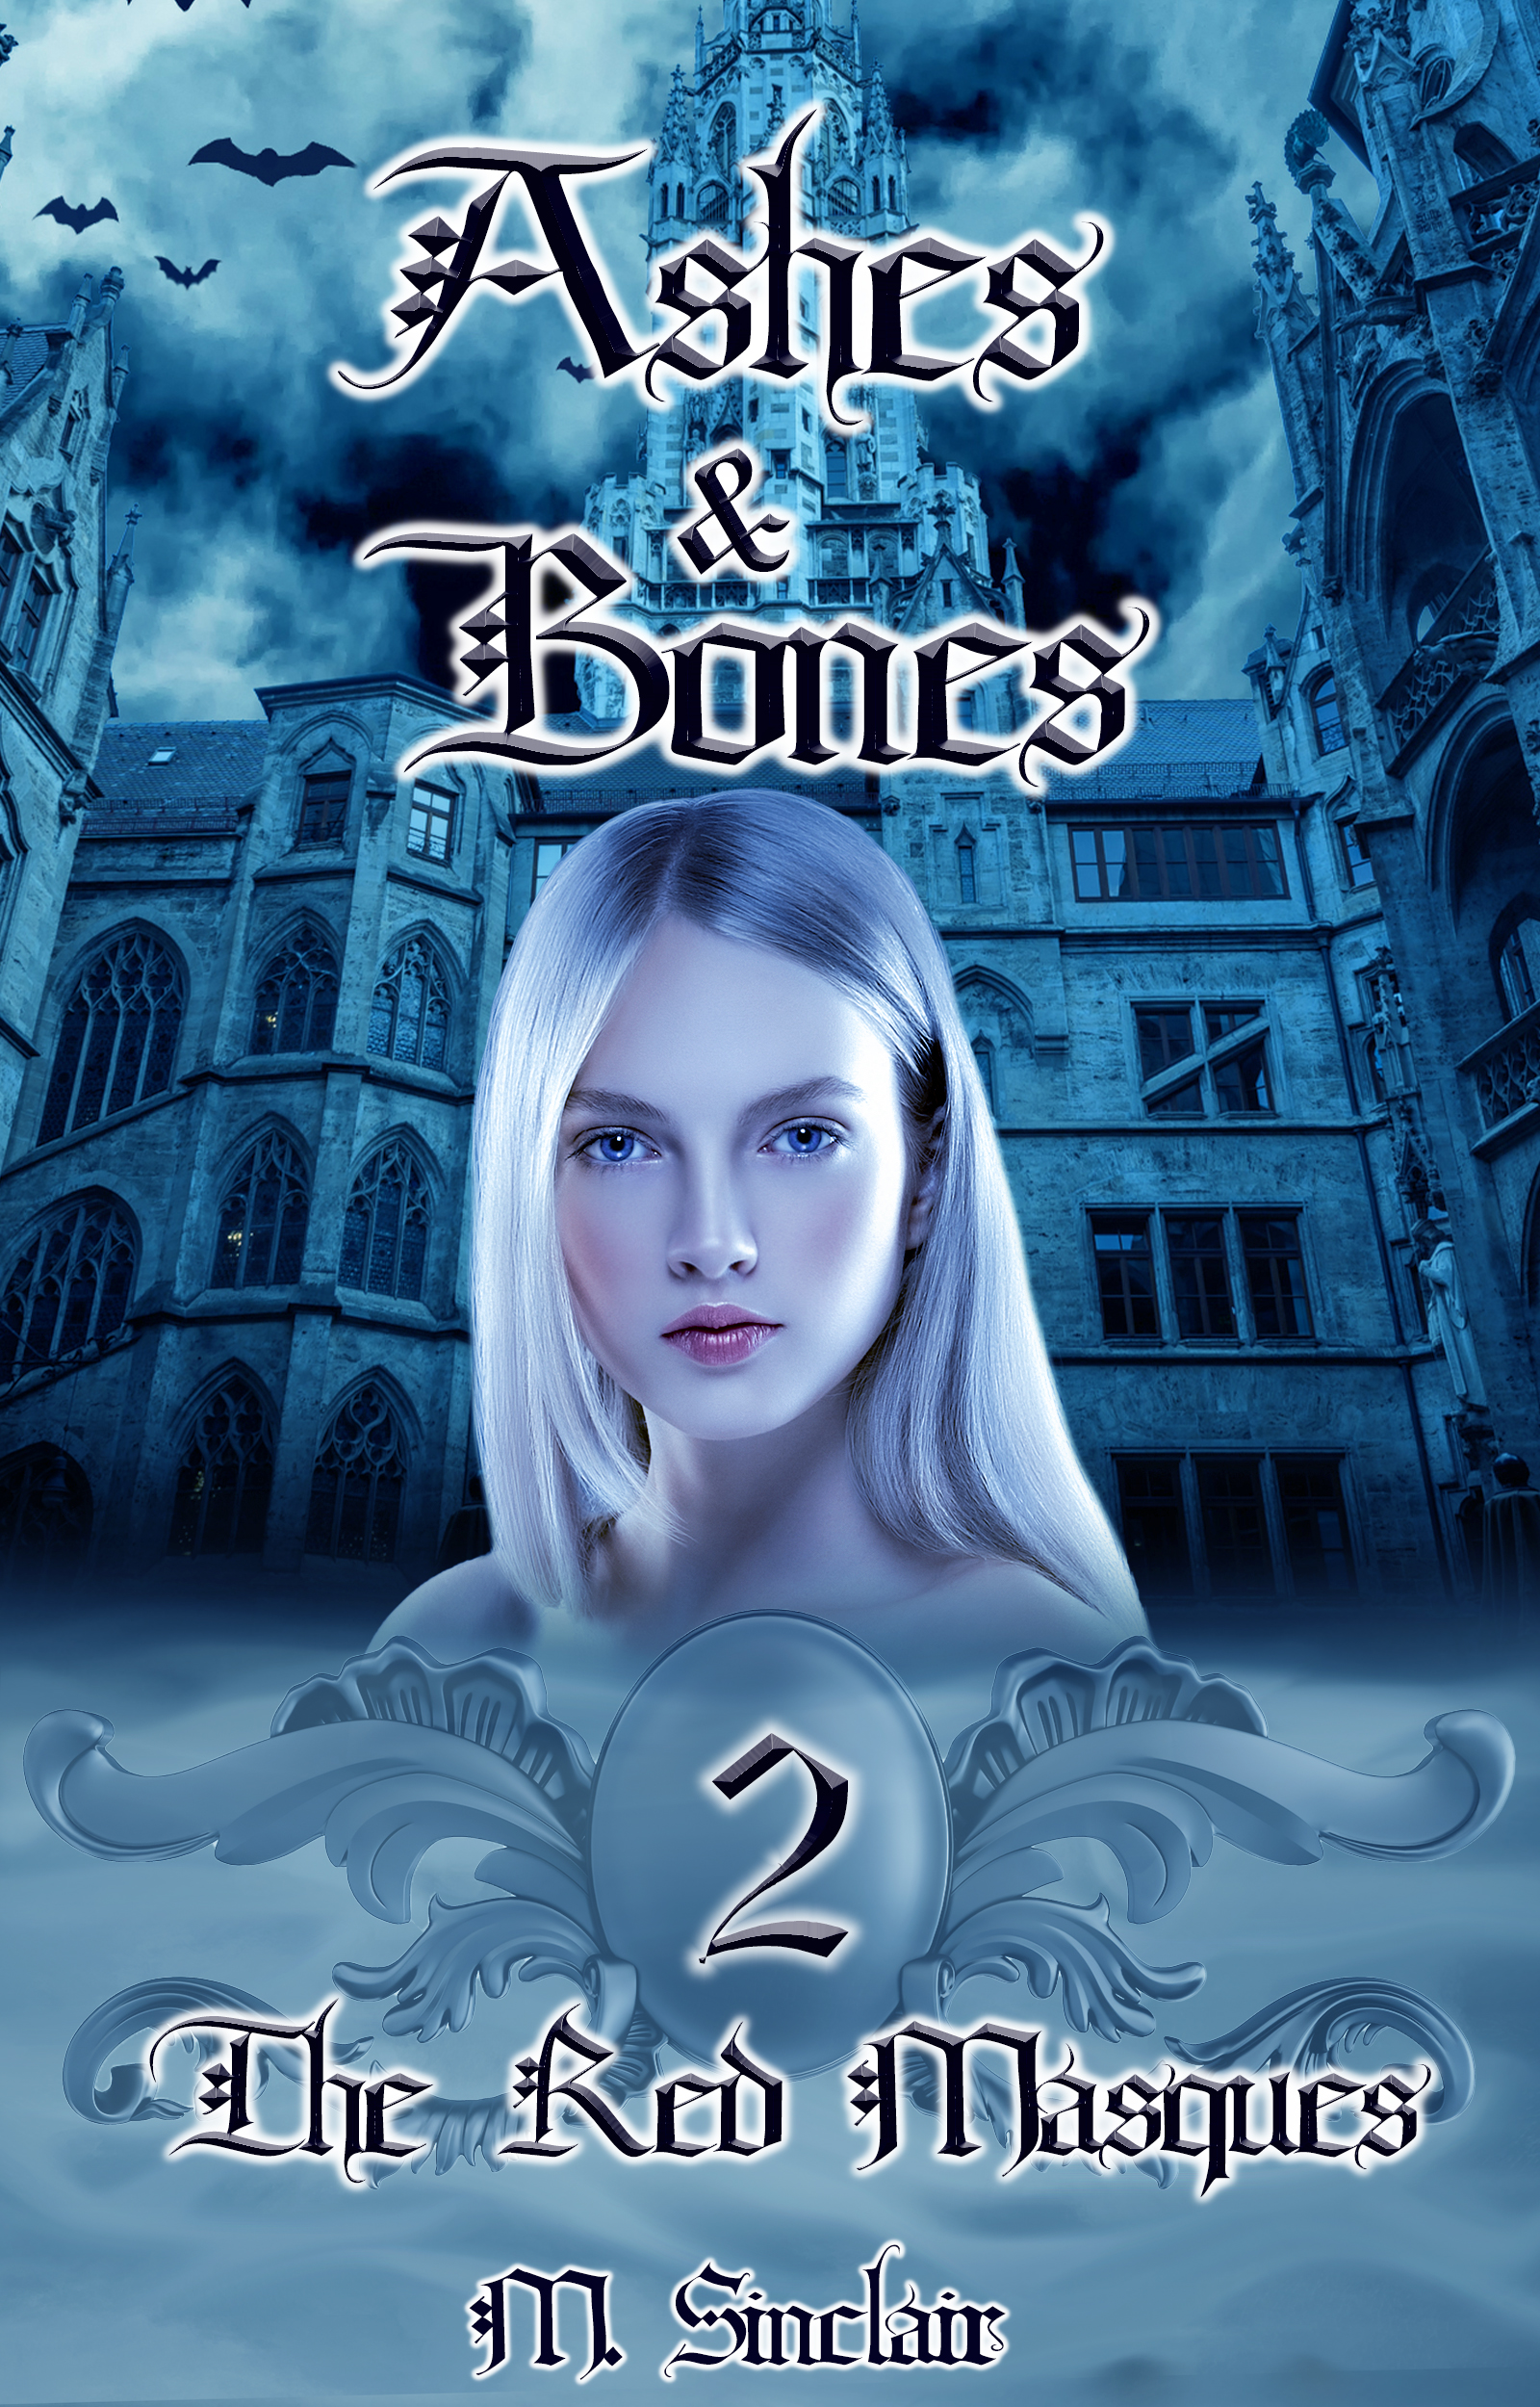 Ashes & Bones (The Red Masques #2)